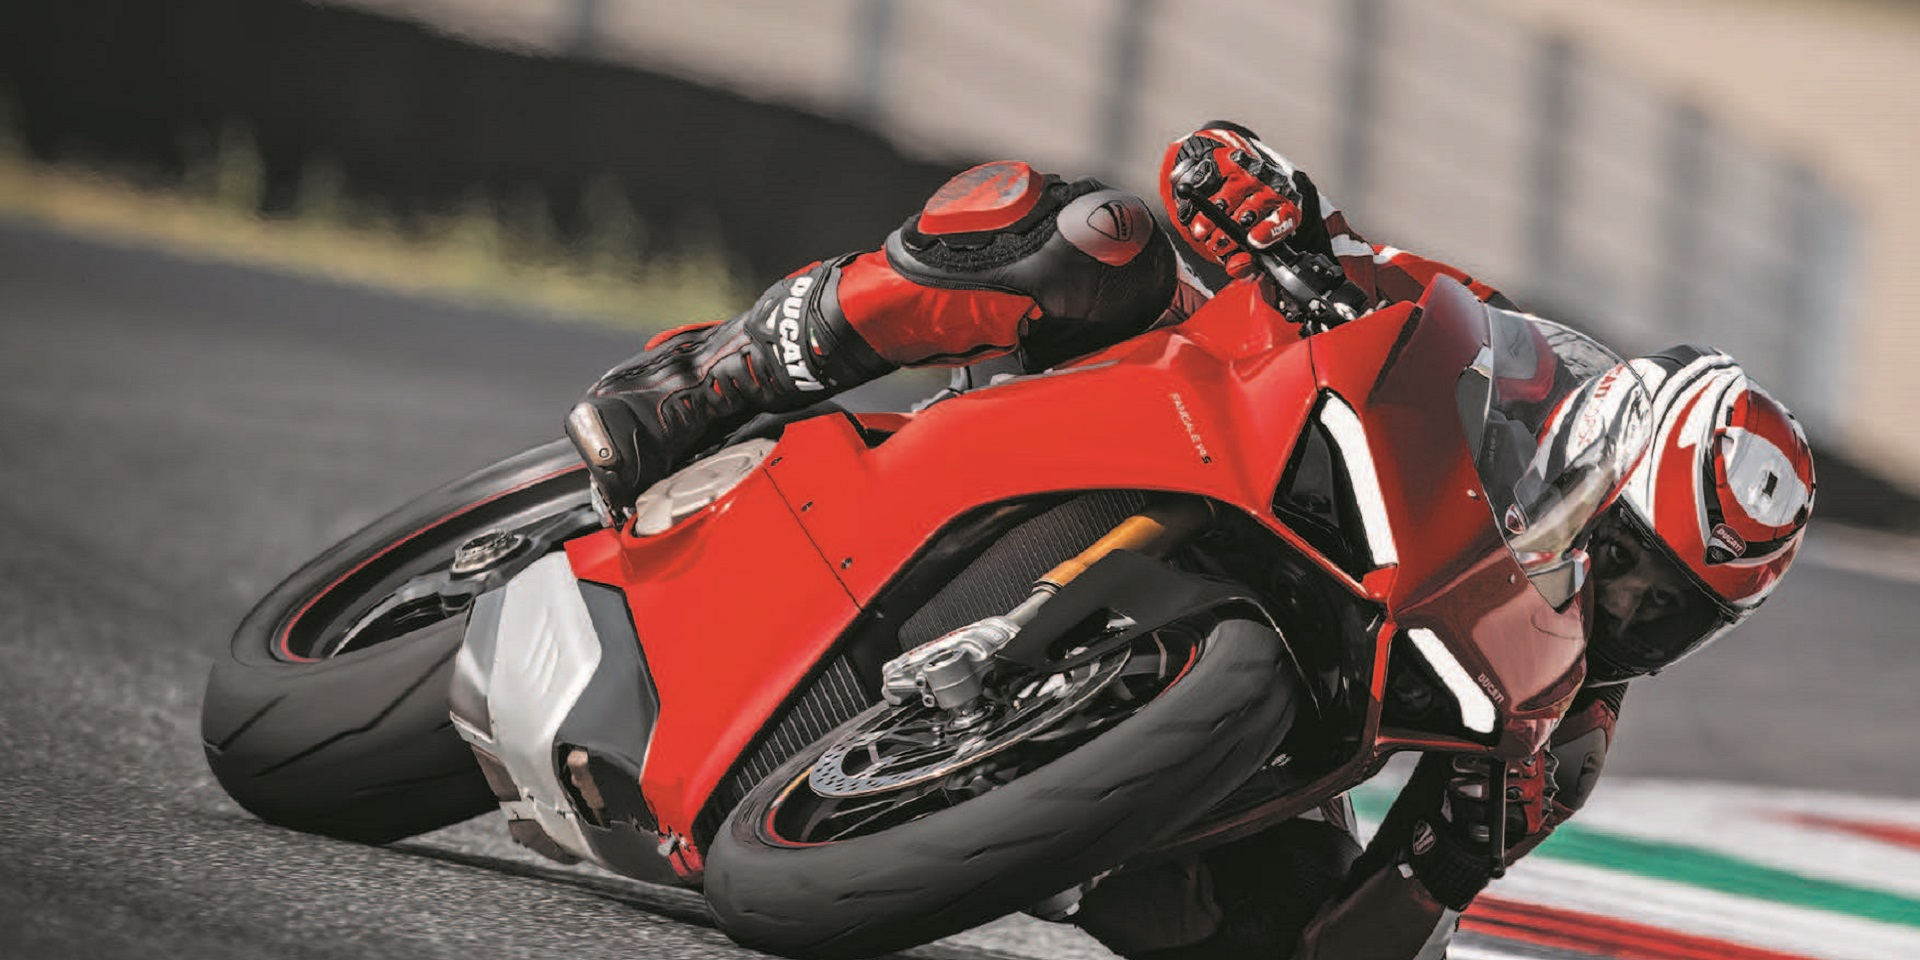 Ducati Uk Track Days 2019 Booking Line Now Open